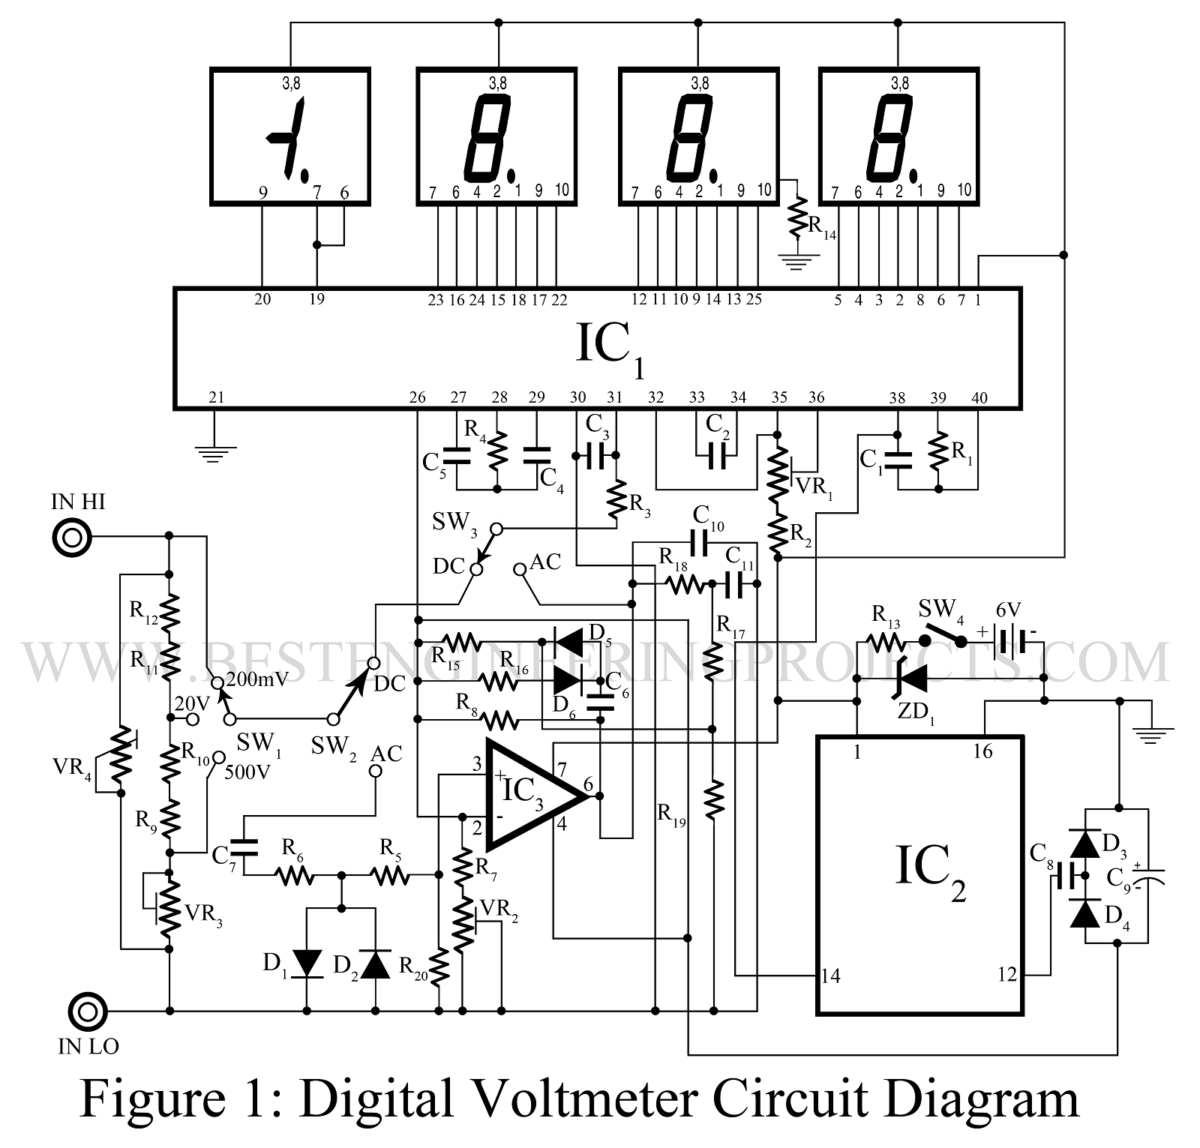 Digital Voltmeter (DVM) Circuit